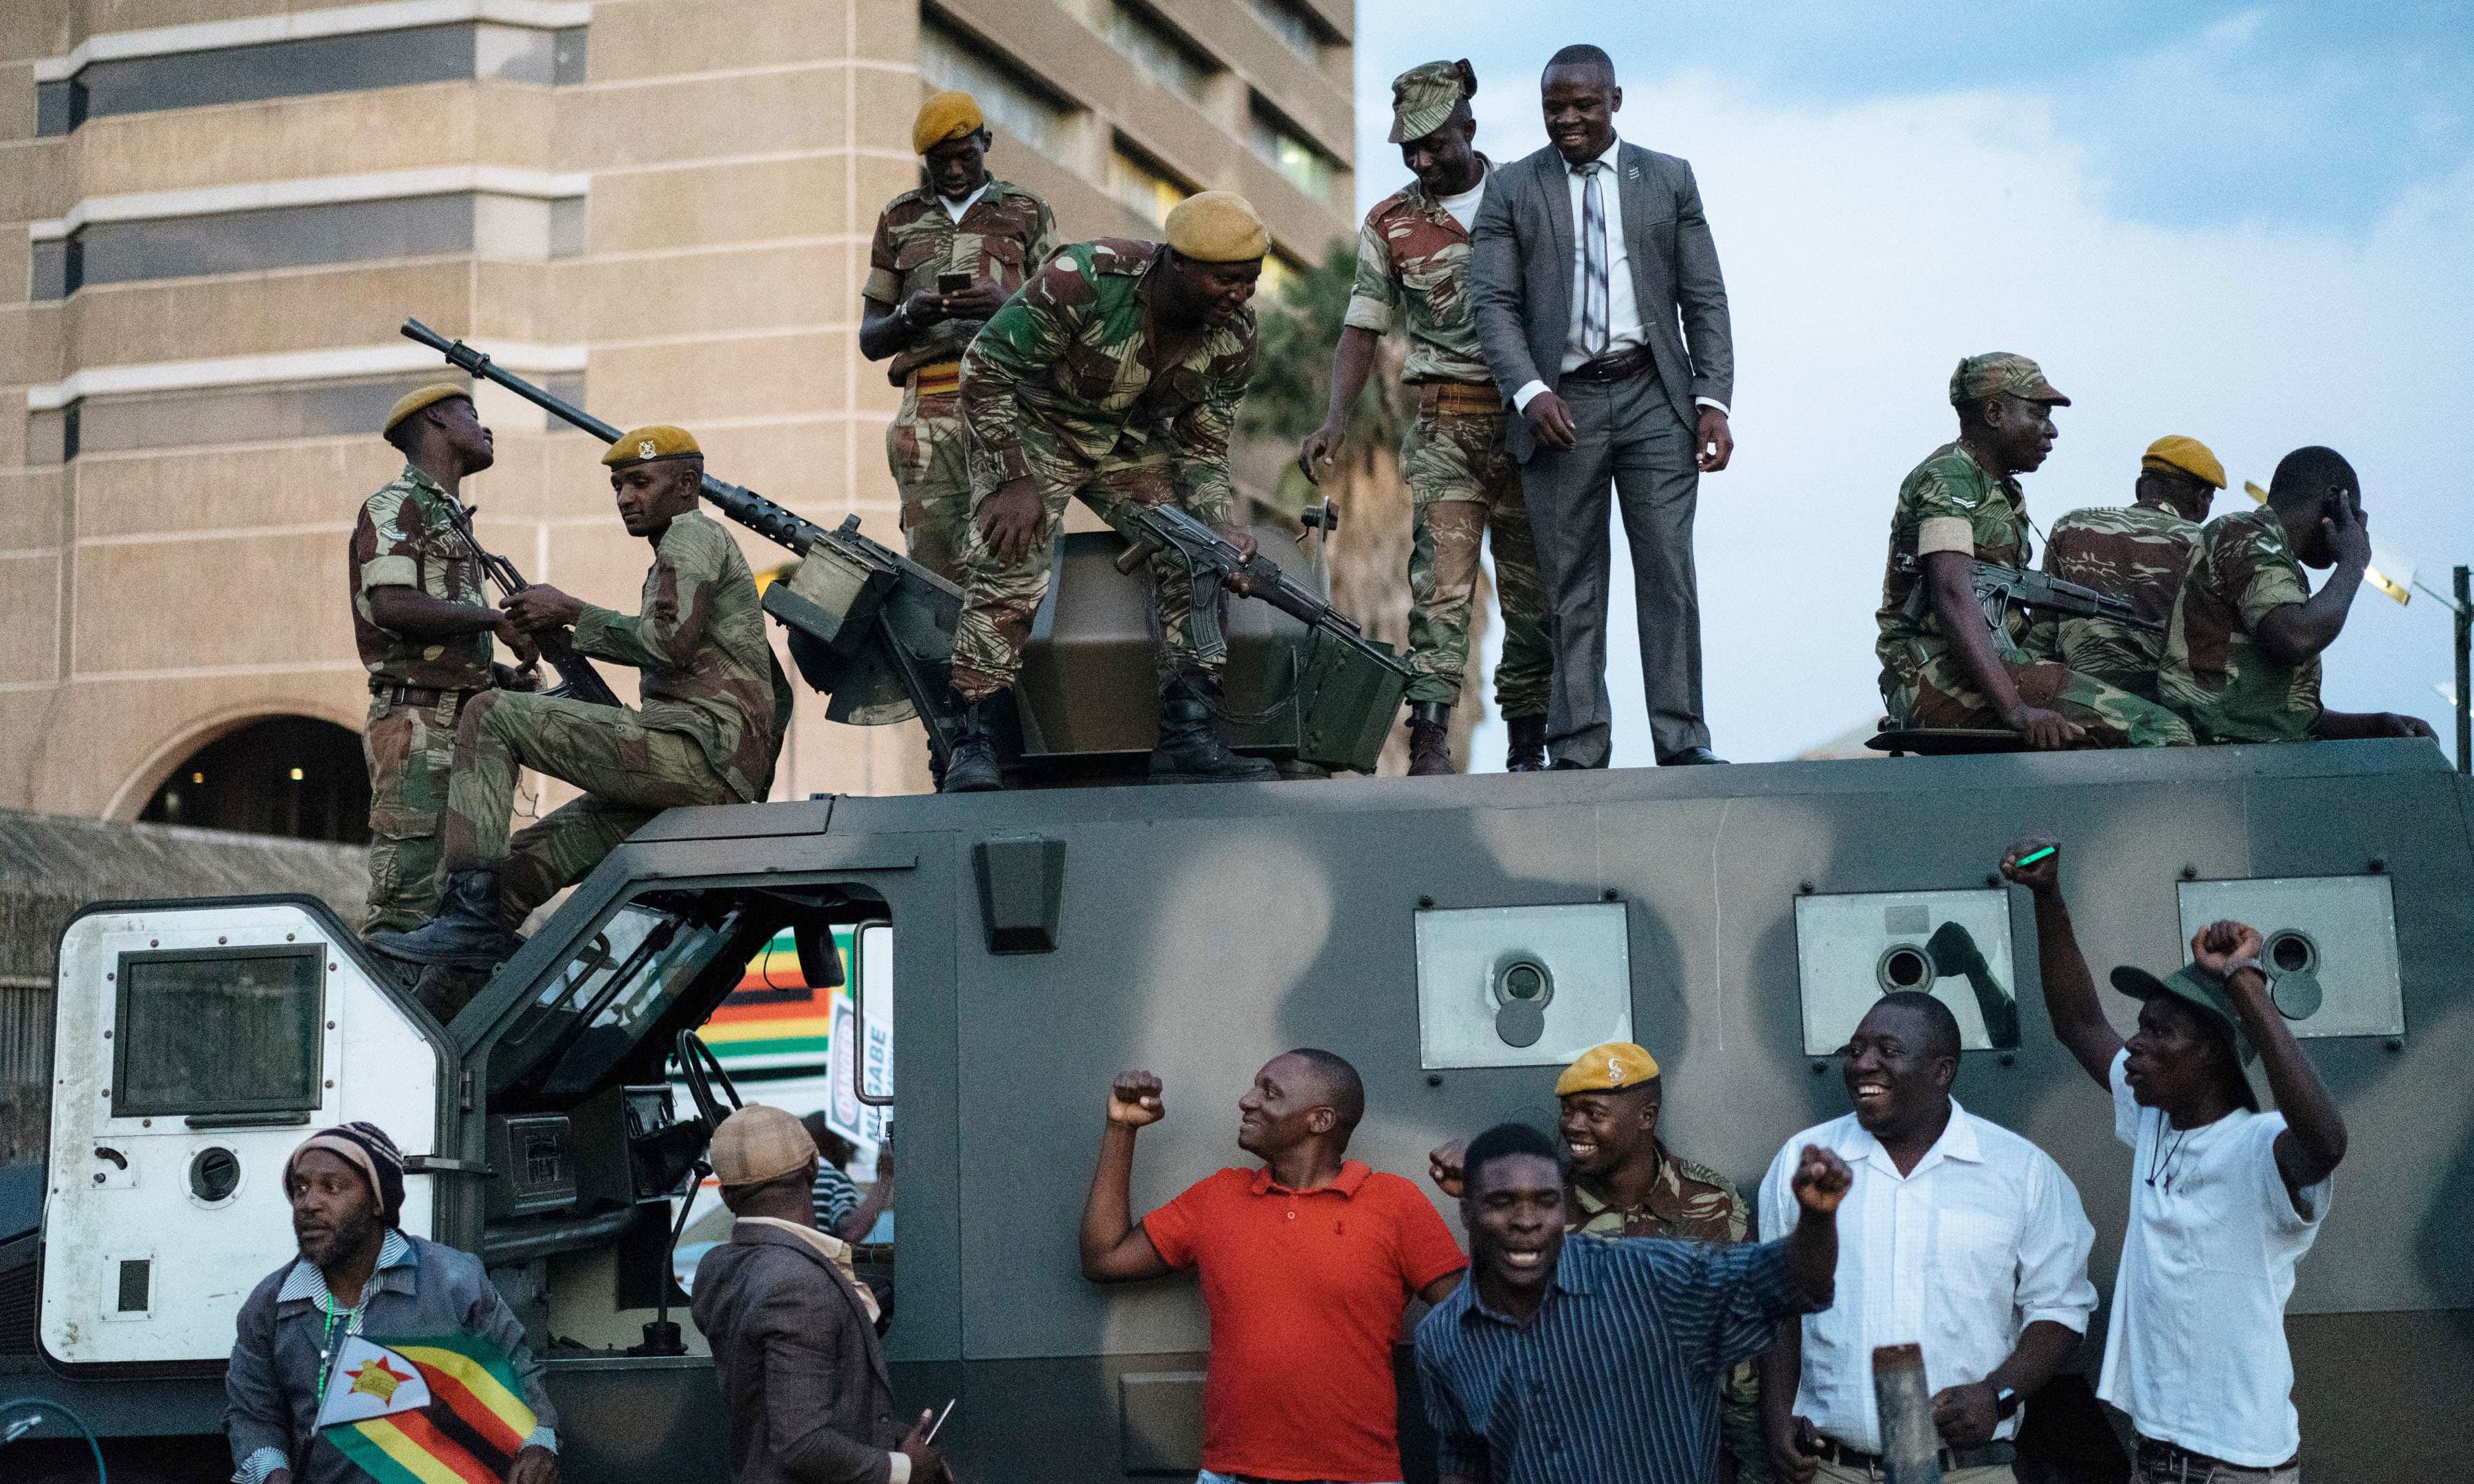 Zimbabwean soldiers are congratulated by citizens in the streets in Harare, on November 21, 2017 after the resignation of Zimbabwe's president Robert Mugabe. —AFP